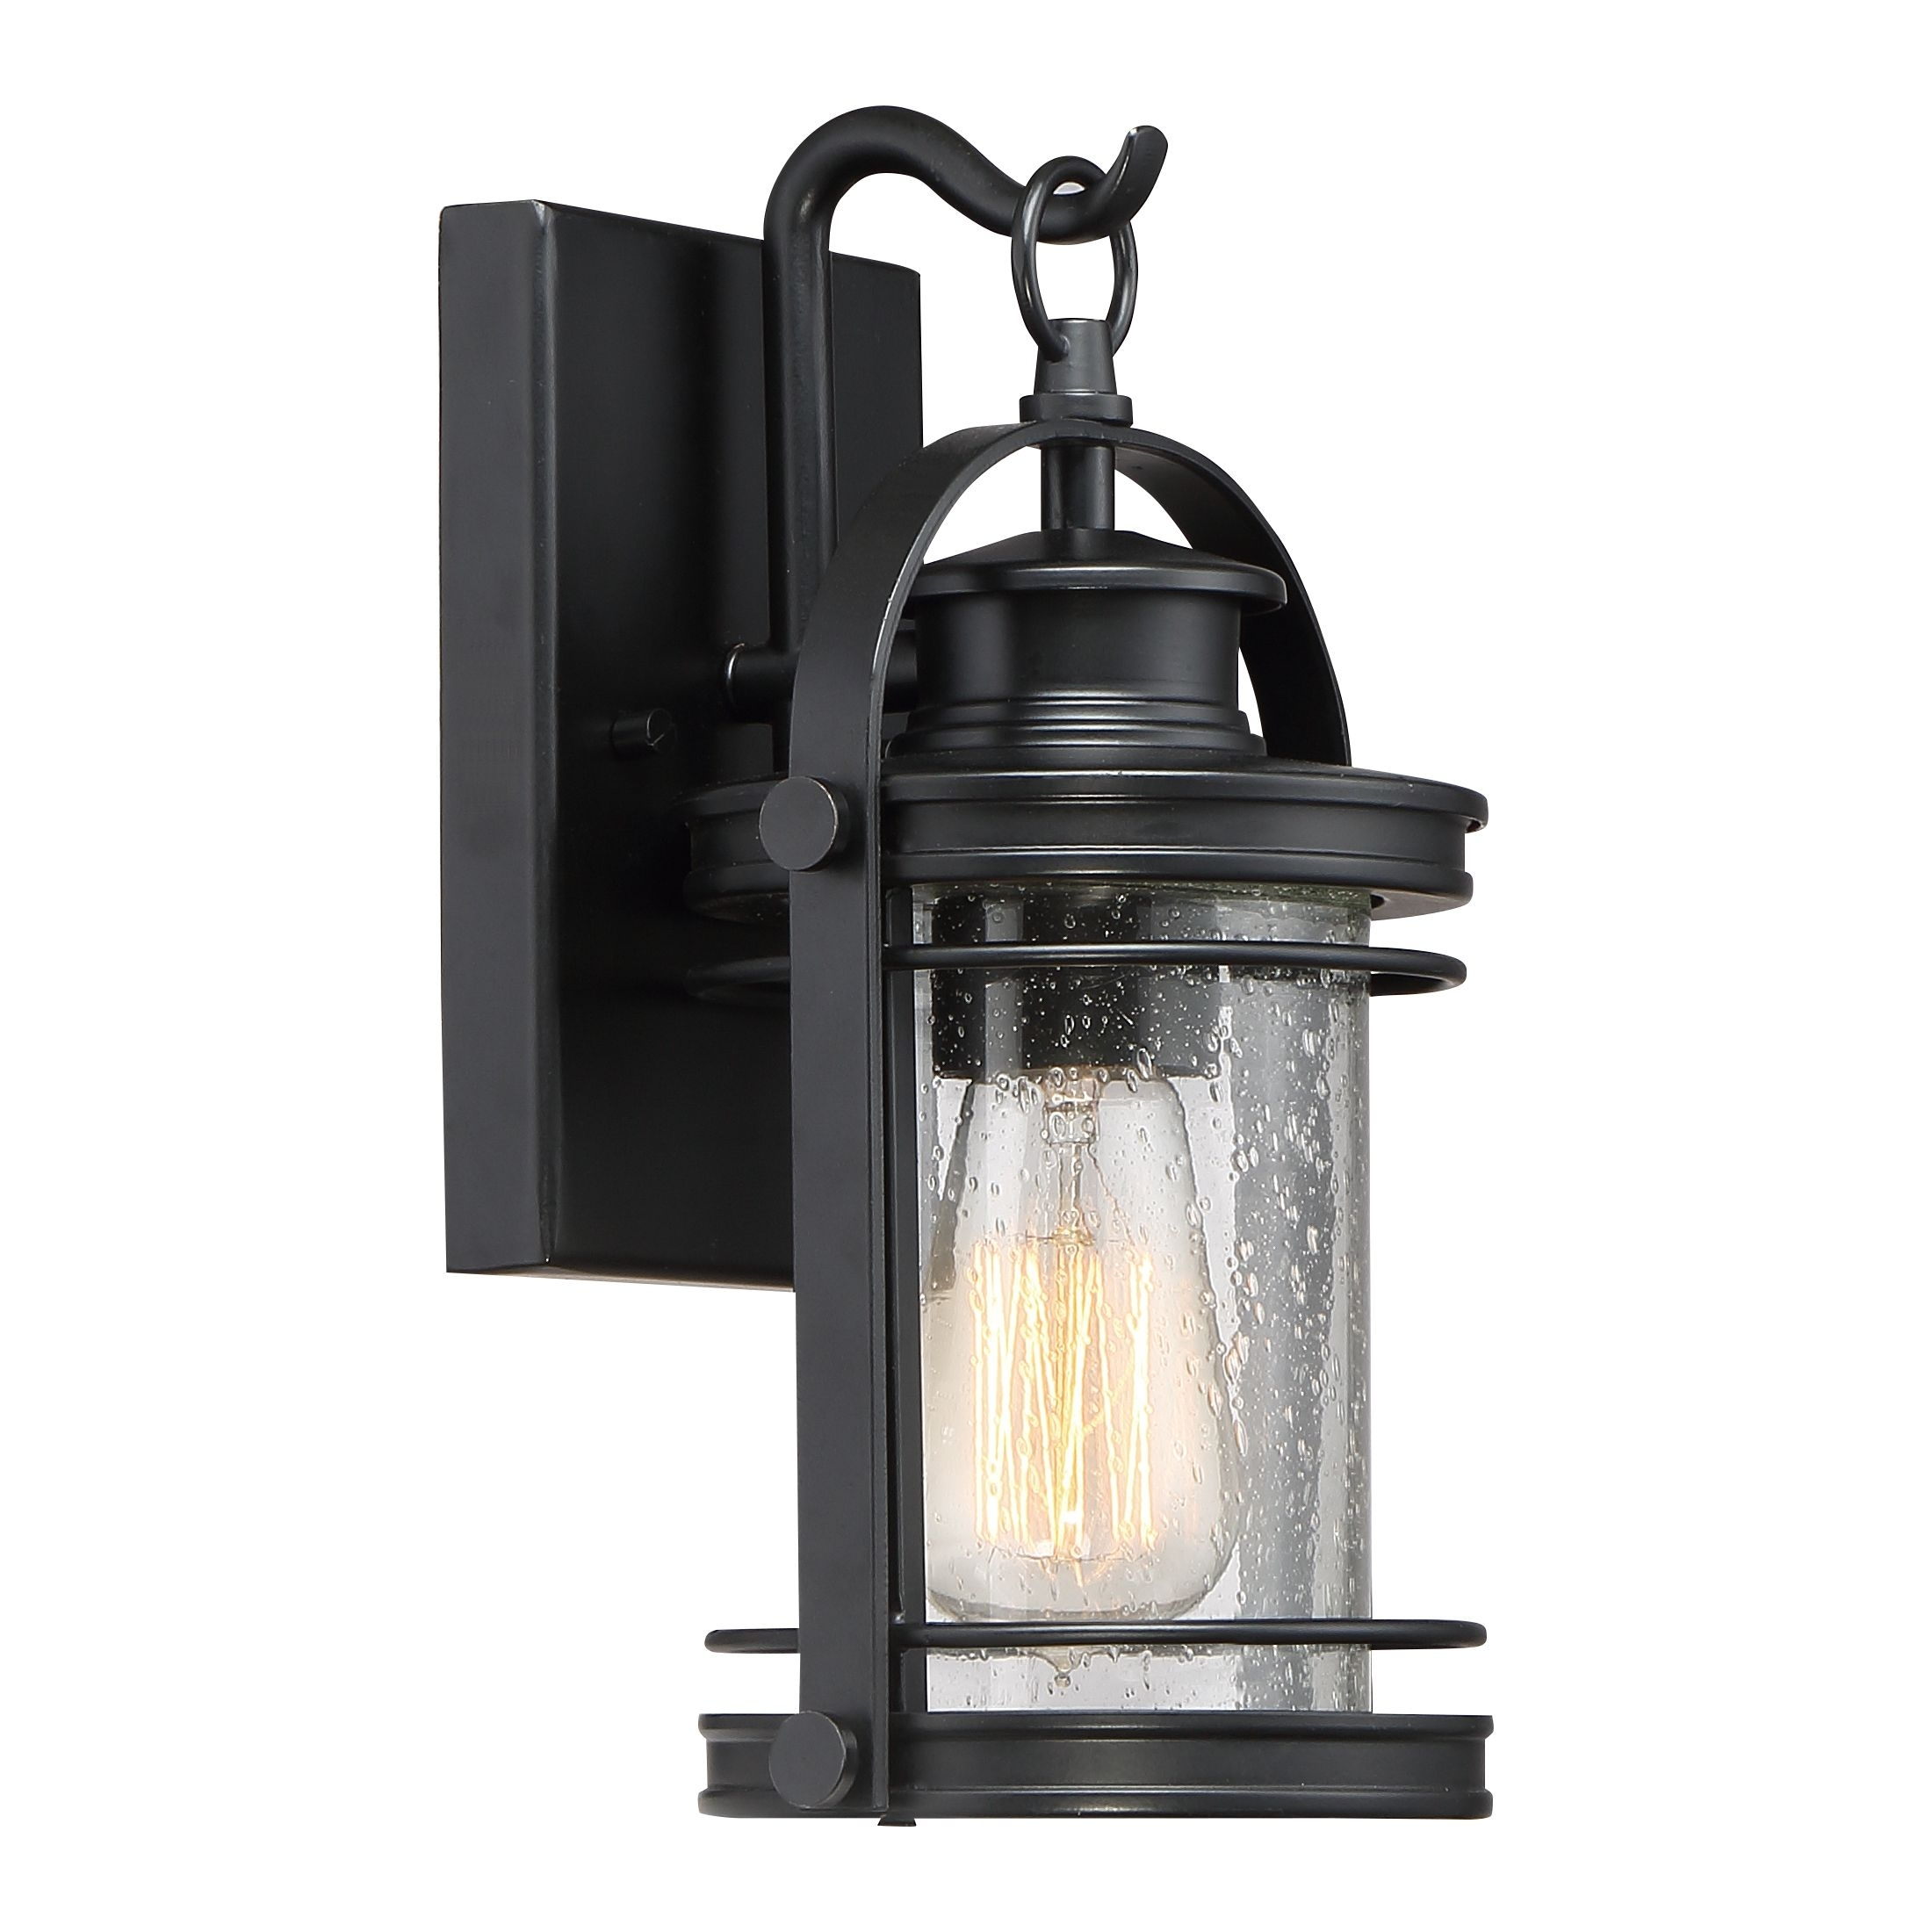 Booker Outdoor Lantern | Quoizel within Outdoor Lanterns Without Glass (Image 4 of 20)